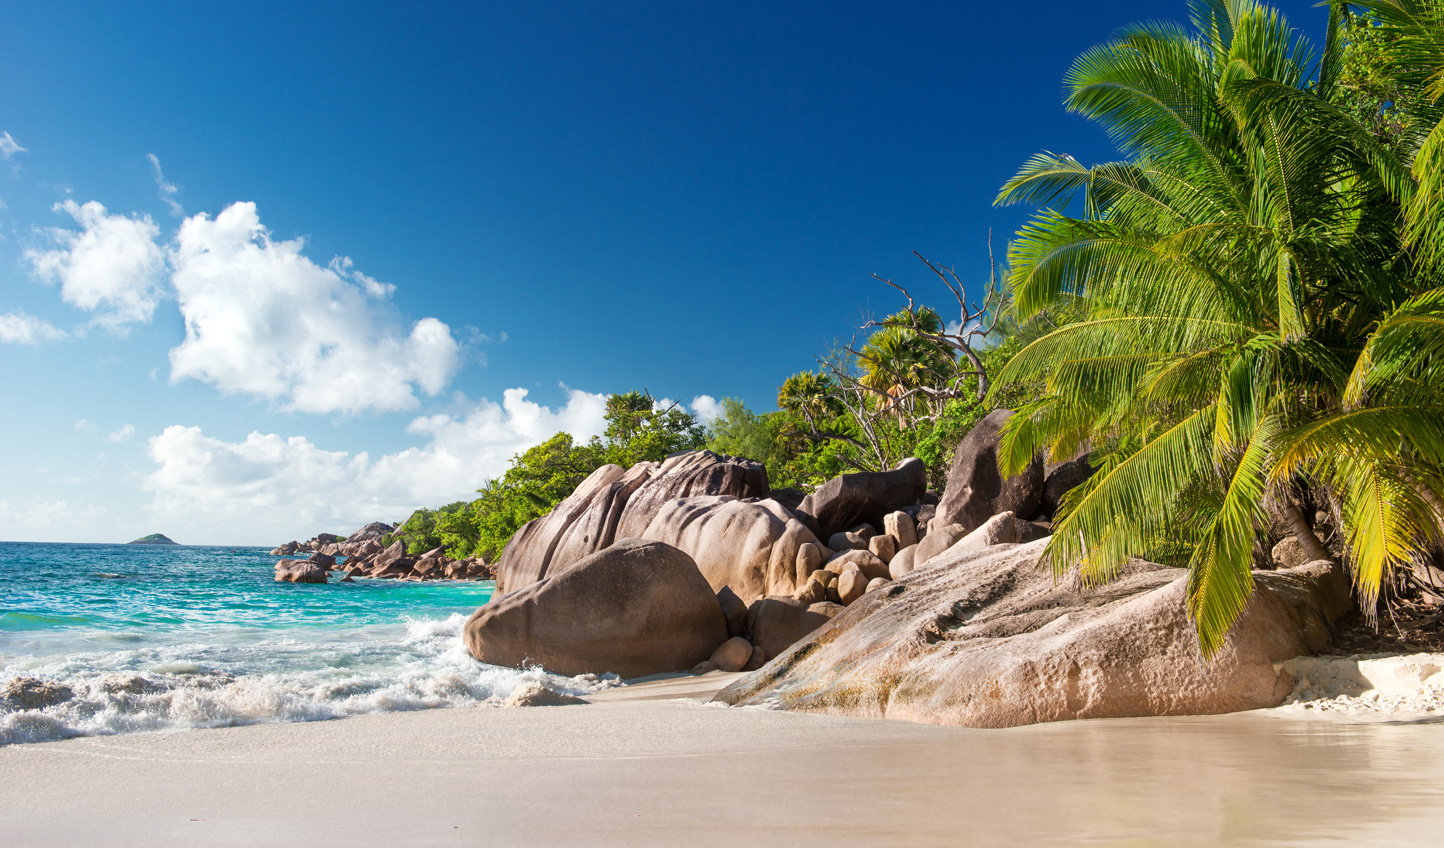 Retreat to the luxury of the Seychelles